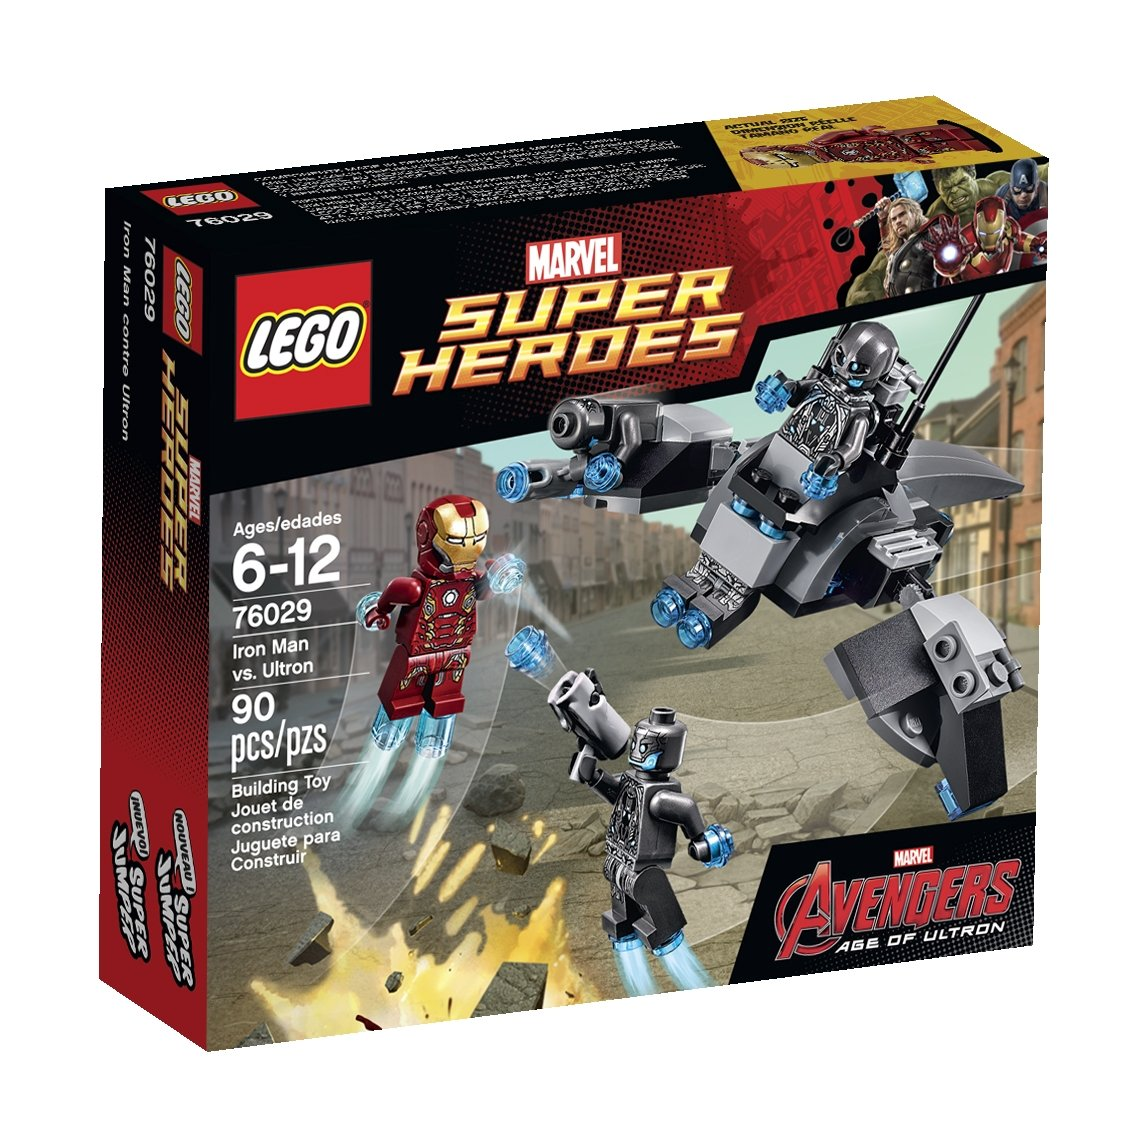 LEGO 76029 Marvel Super Heroes Iron Man vs. Ultron